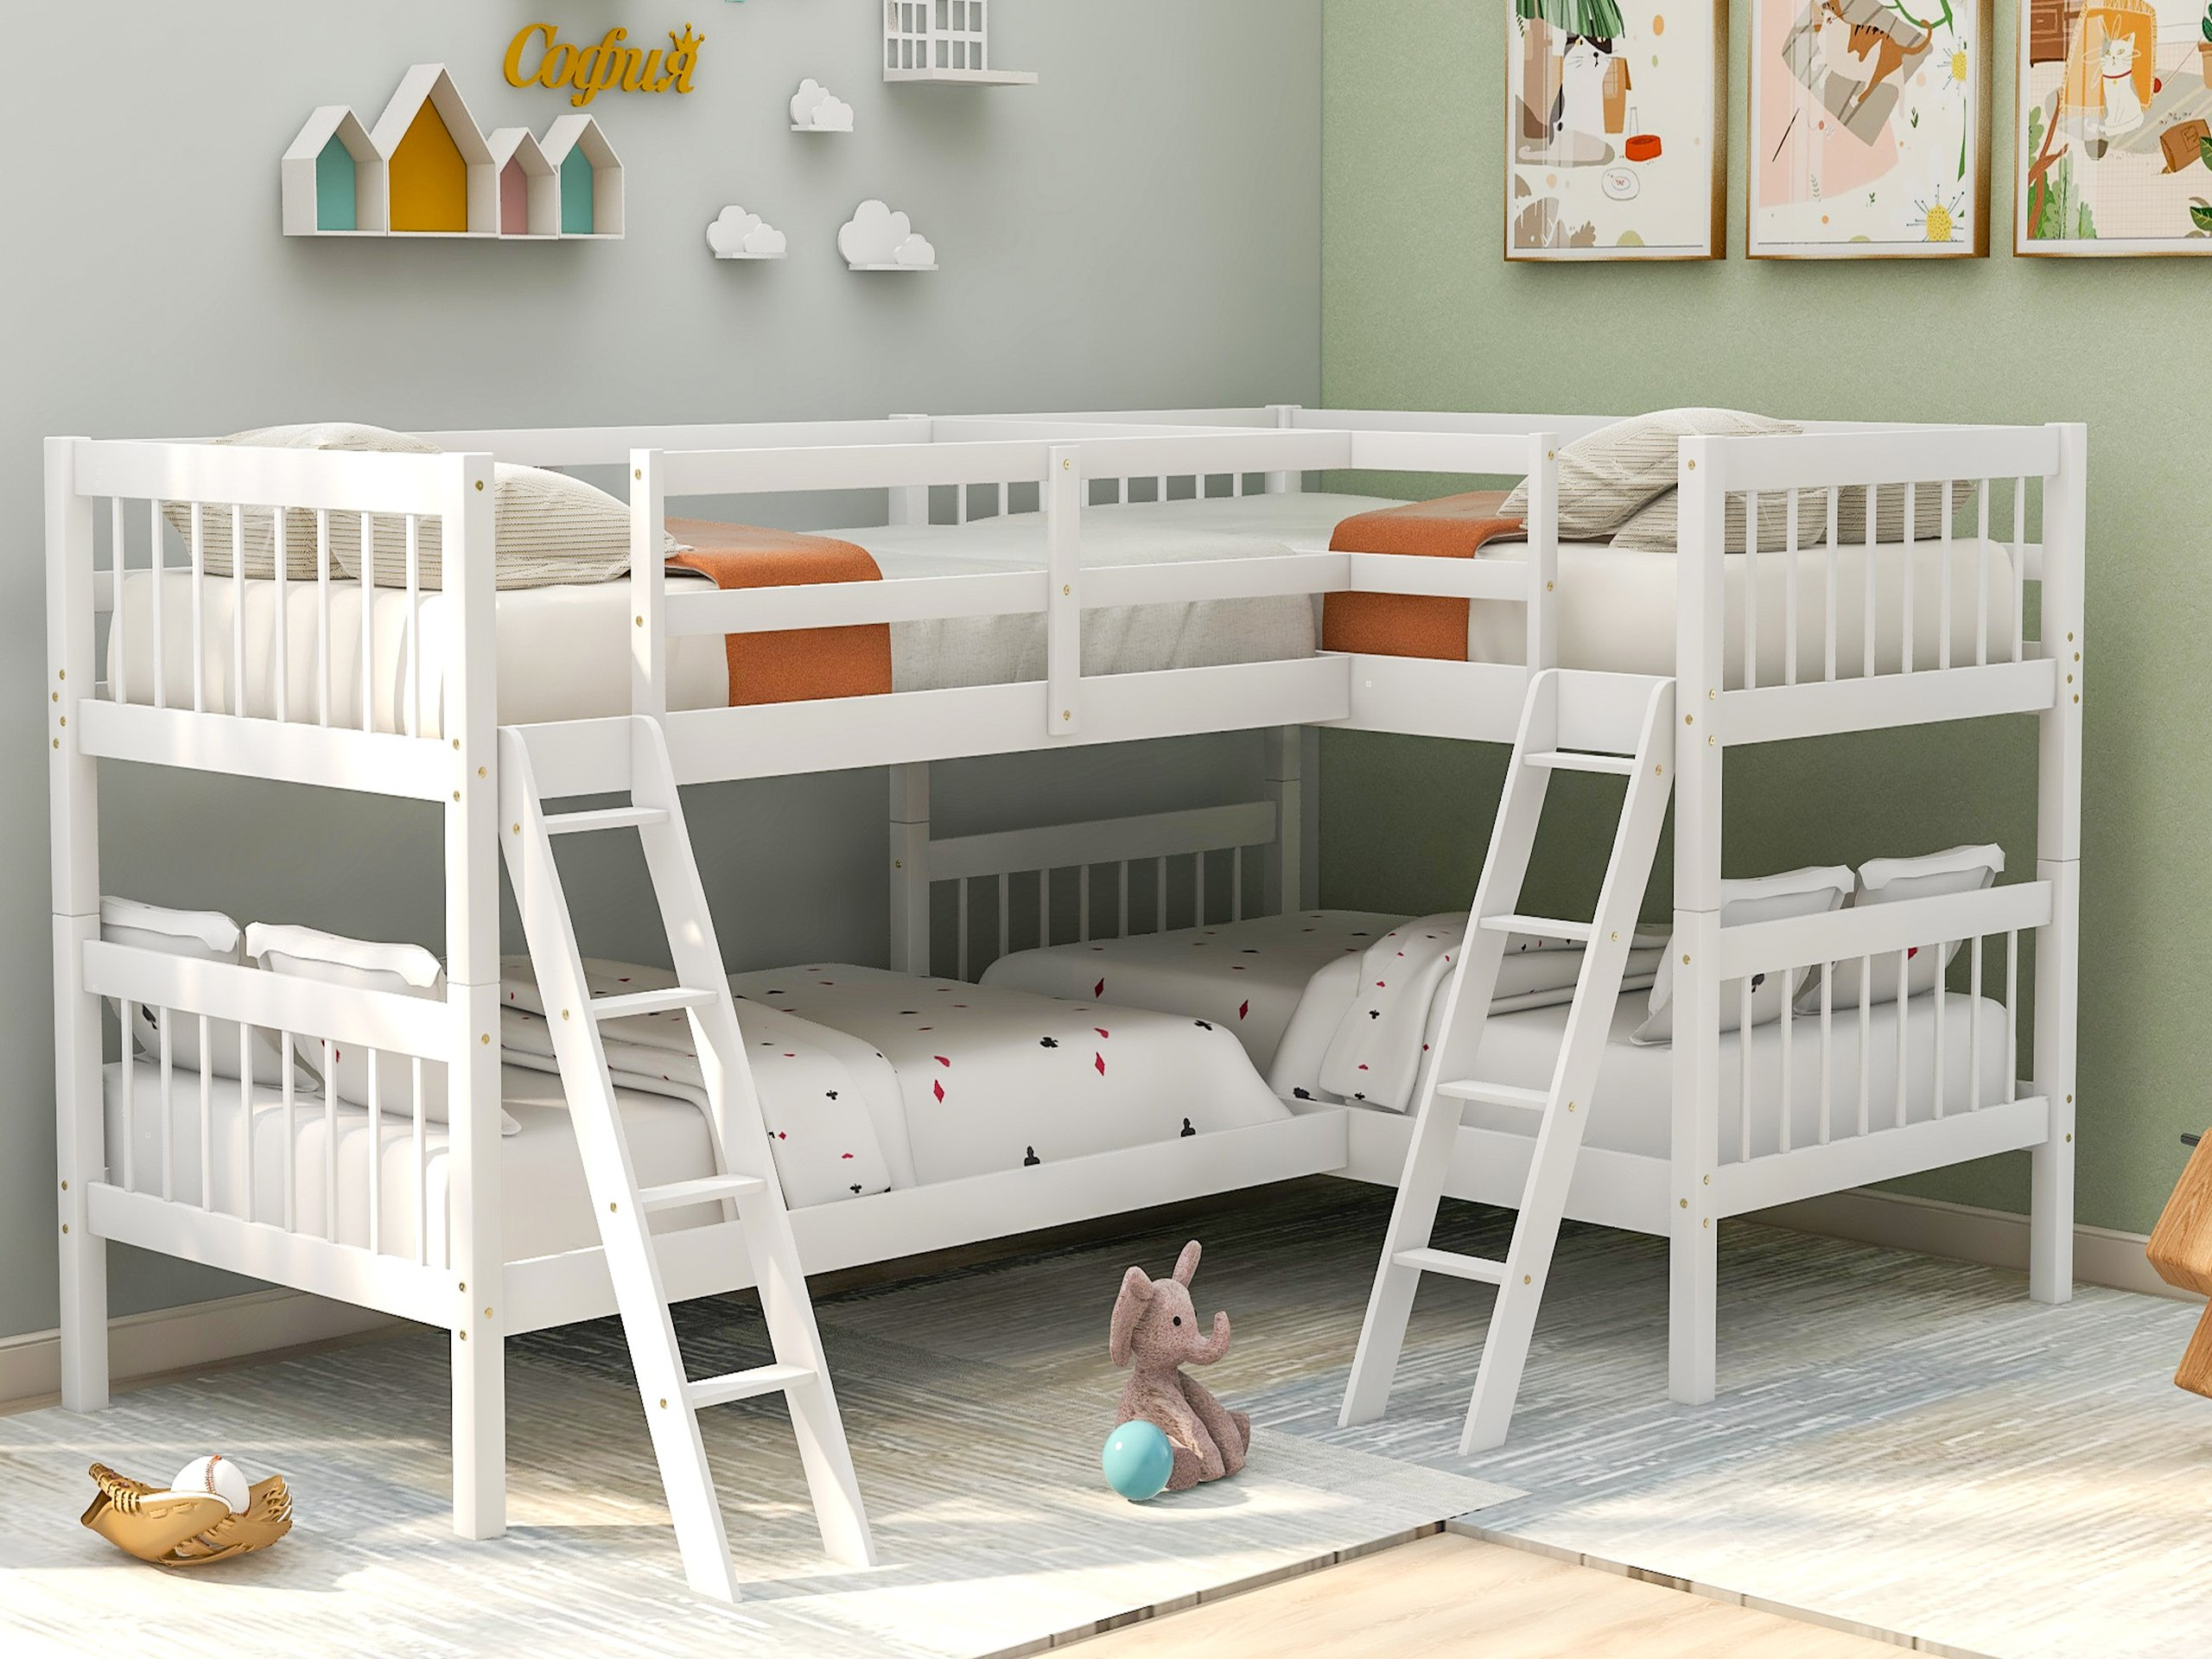 L-Shaped Bunk Bed Twin Size